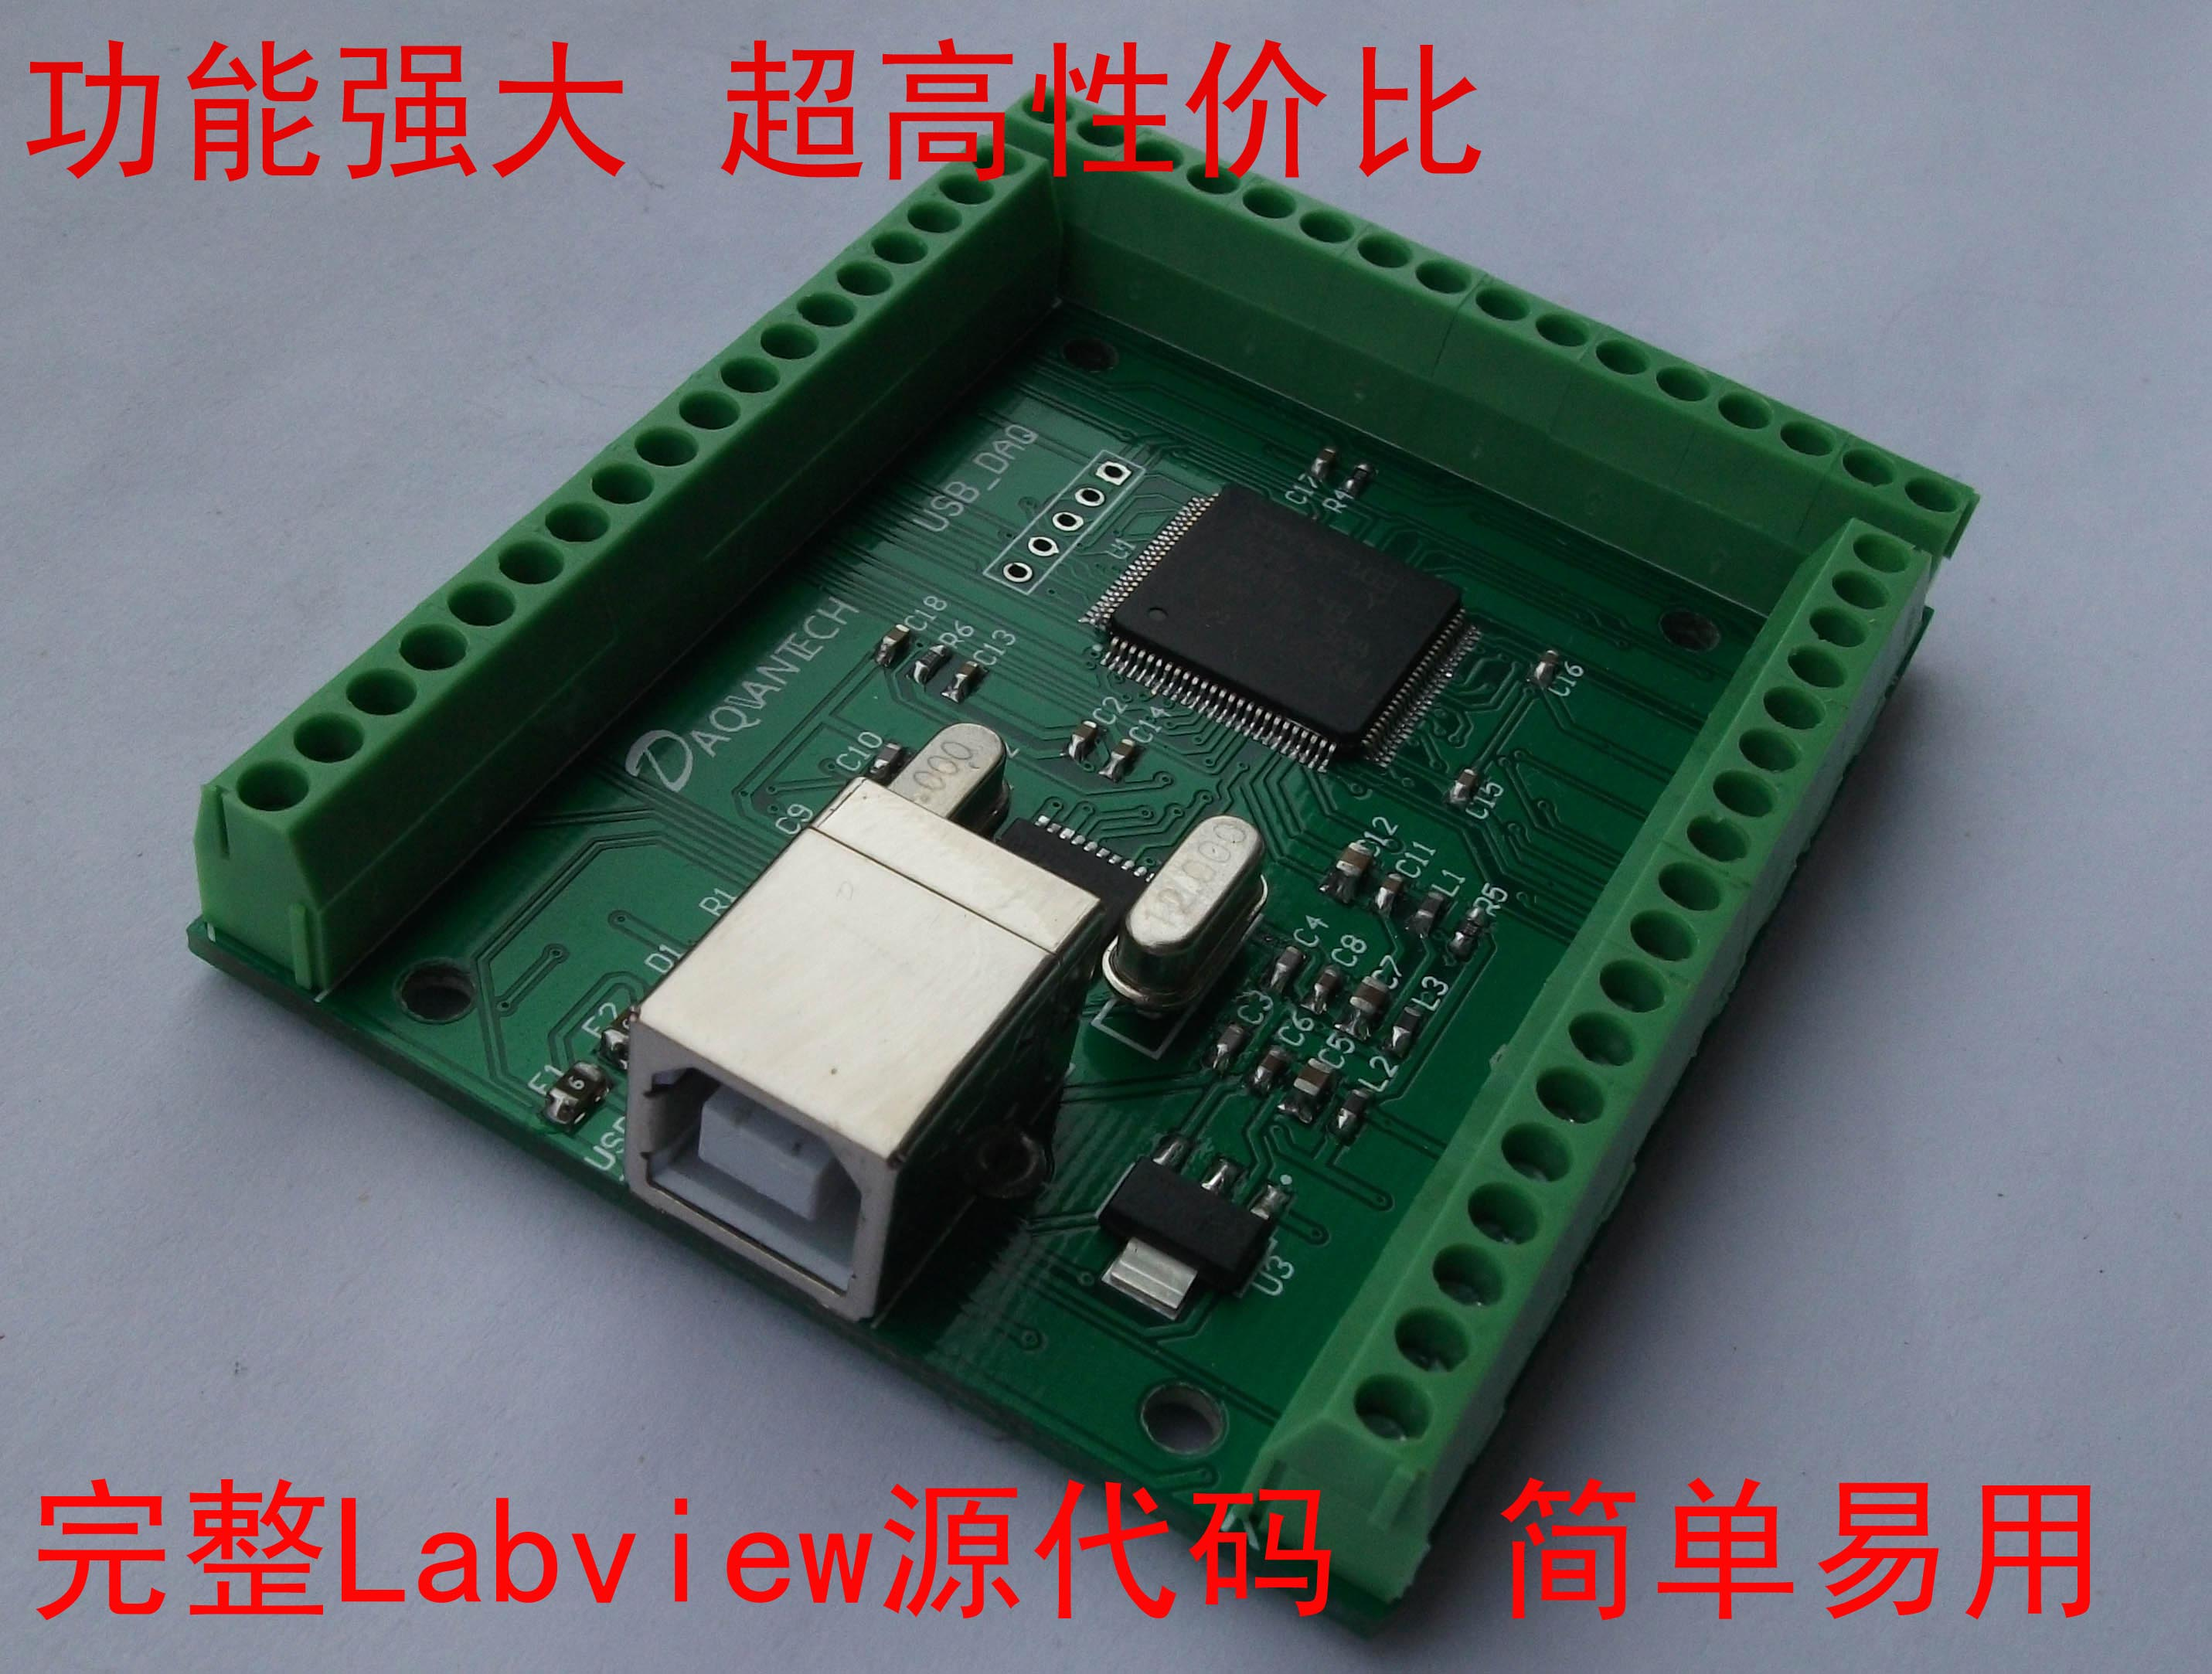 USB Data Acquisition Card 12 Road 12 Bit AD 2 Road DA 2 Frequency Measurement 4 Road PWM 28 Road DIO